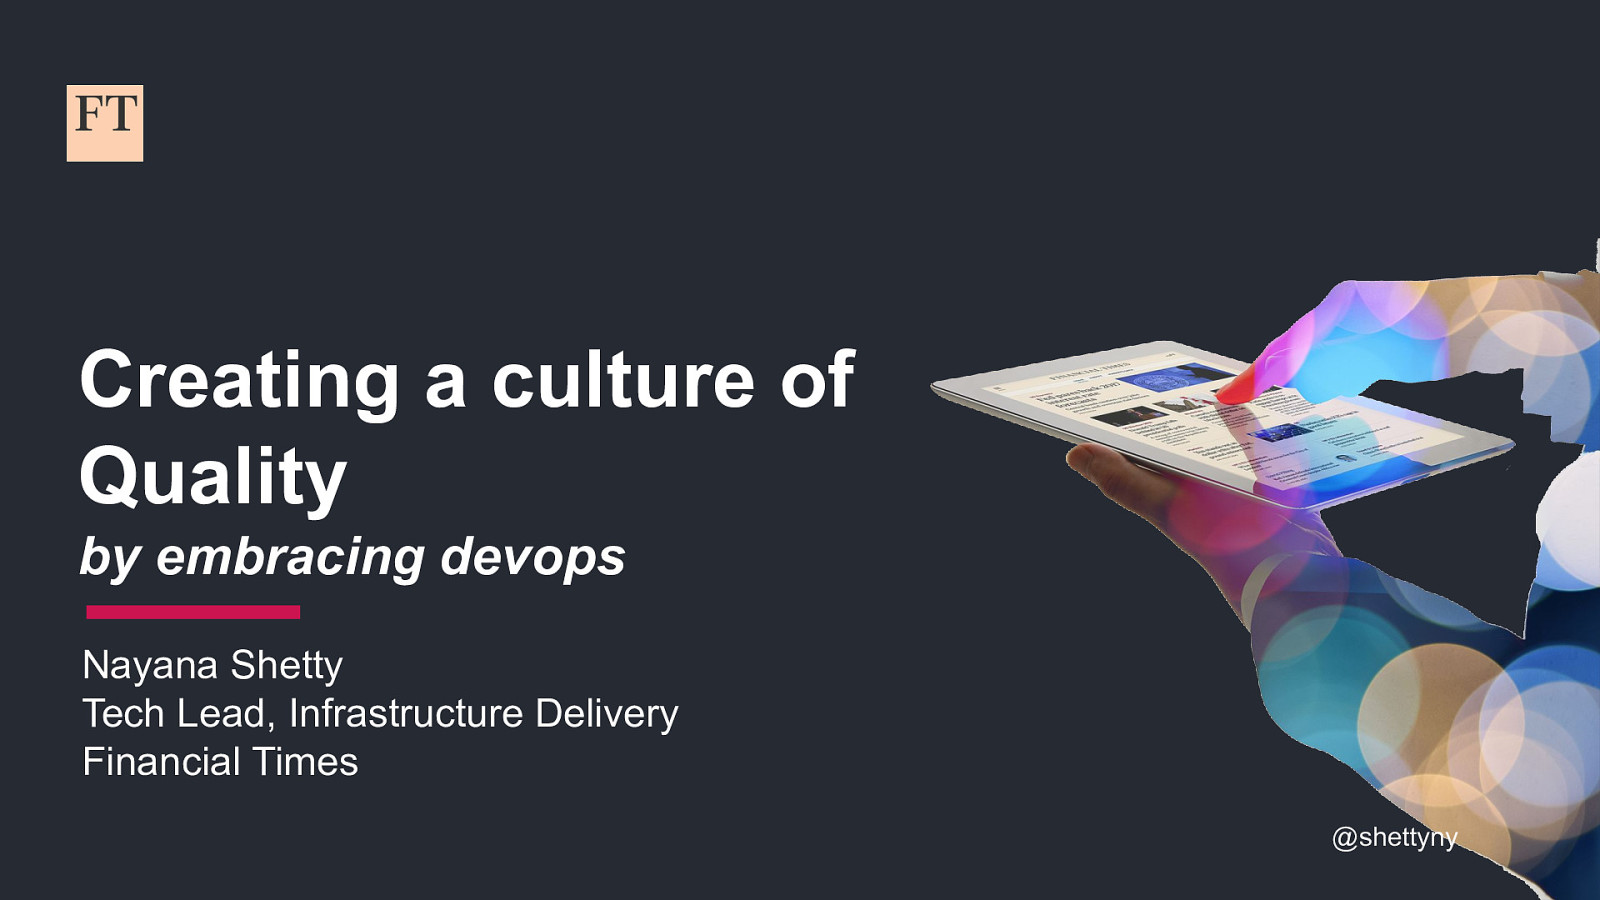 Embracing DevOps practices to create a culture of quality